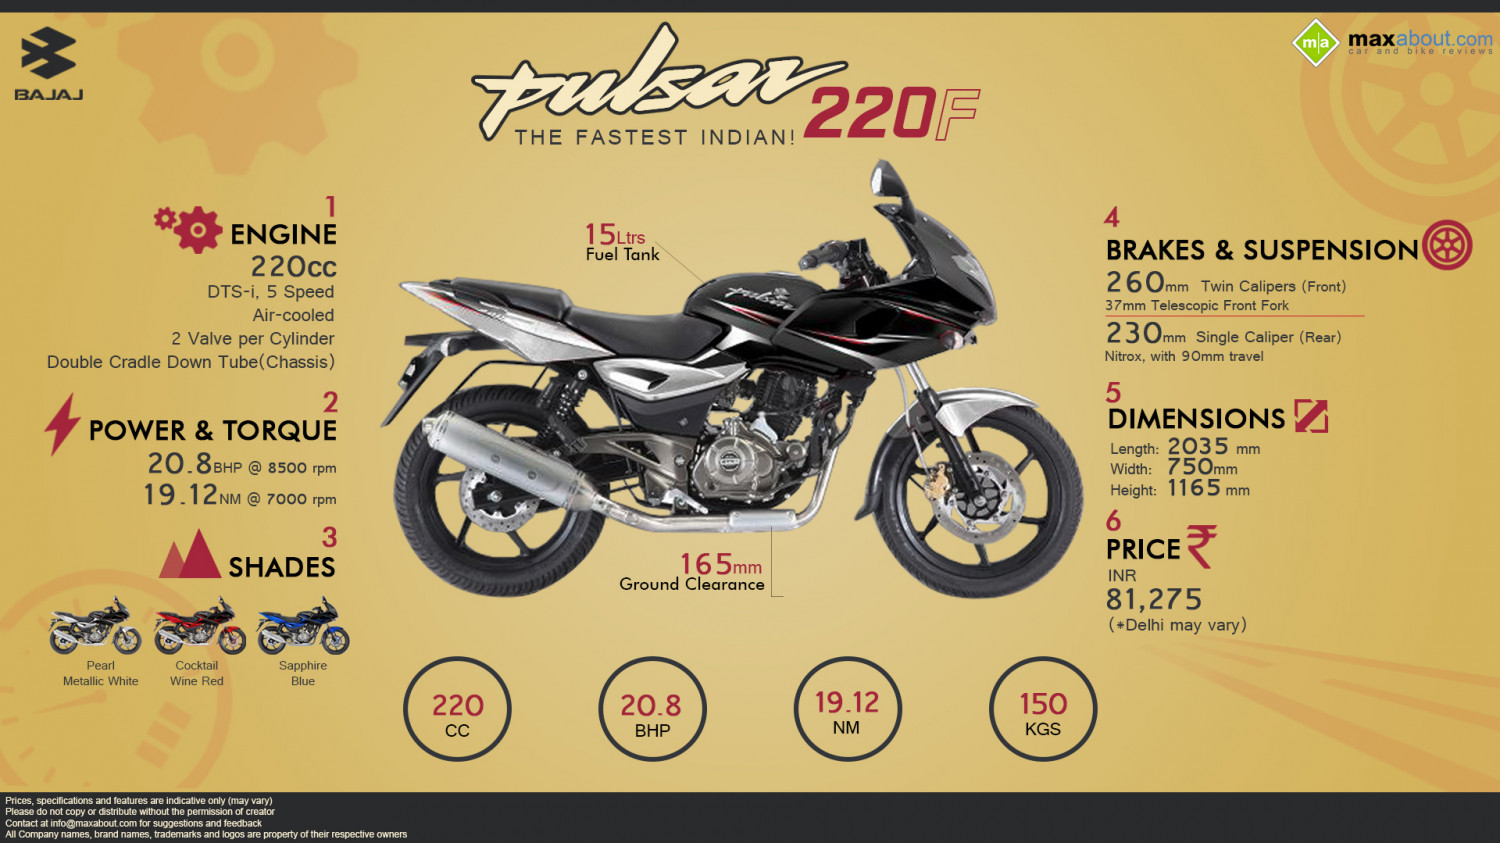 Bajaj Pulsar 220F - The Fastest Indian! Infographic